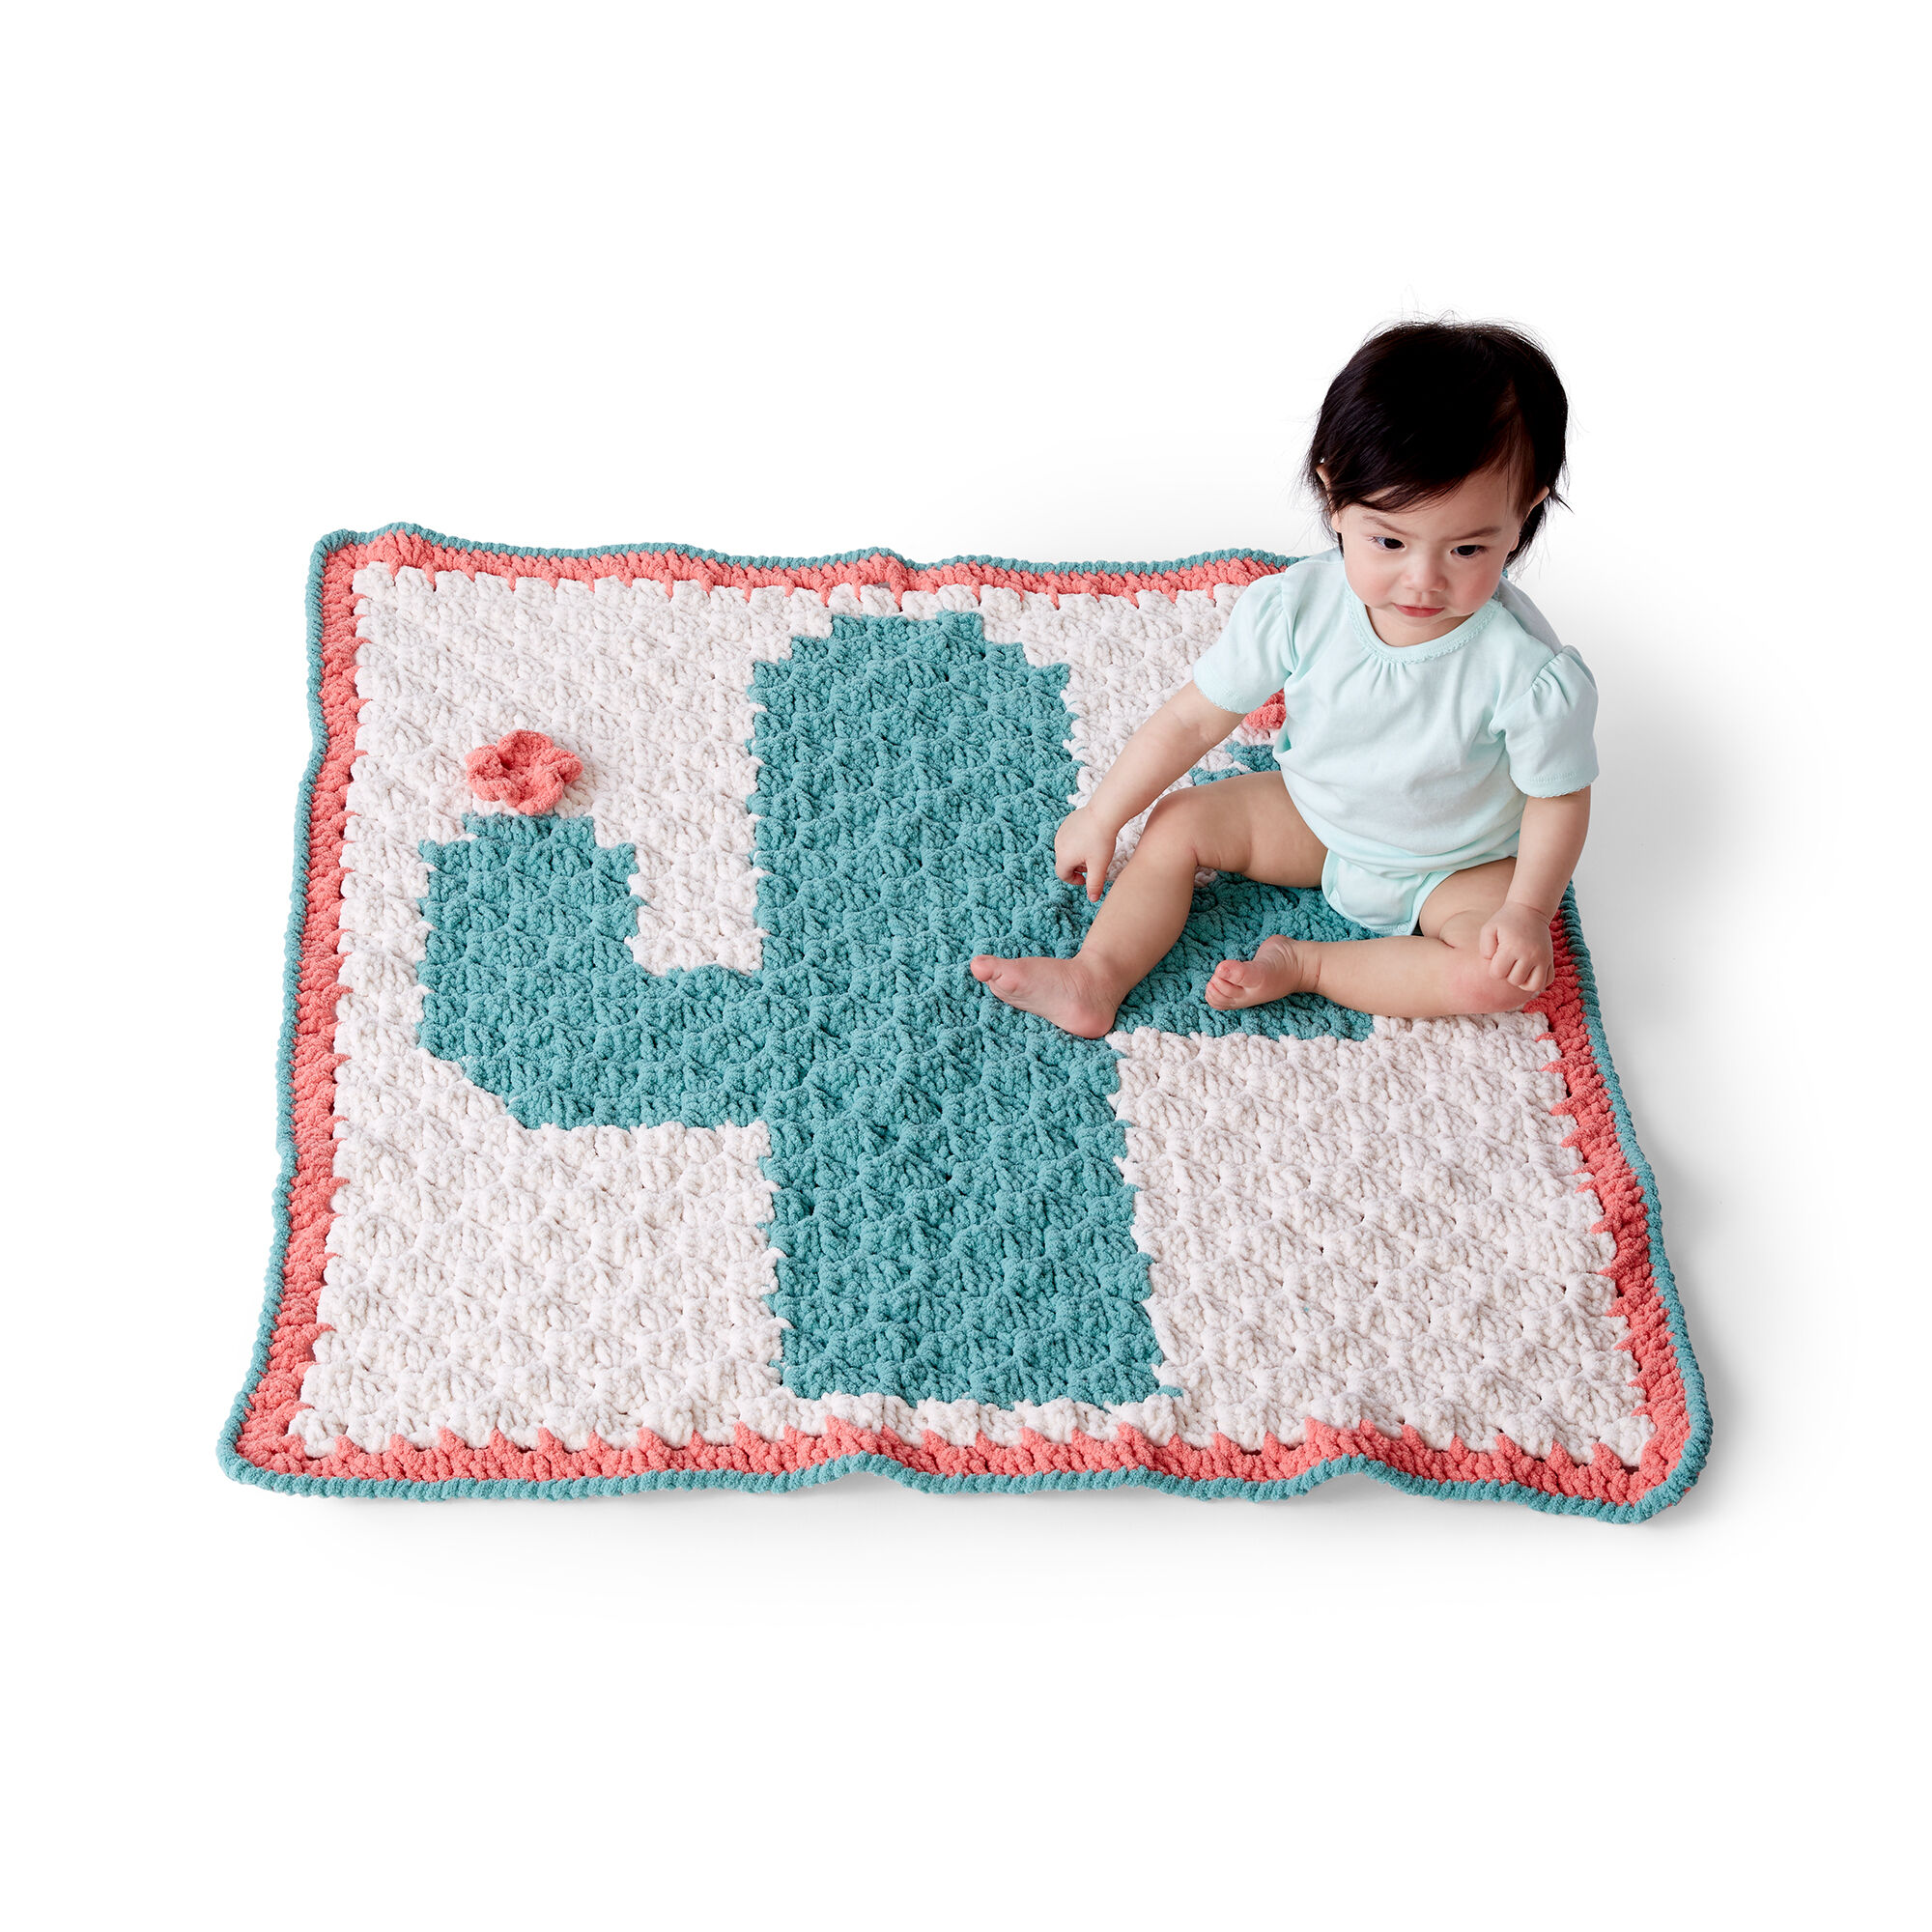 Bernat C2C Crochet Cactus Blanket - If you're looking to learn a new crochet skill, check out these 12 corner to corner crochet patterns. #cornertocornercrochetpatterns #C2Ccrochetpatterns #crochetpatterns